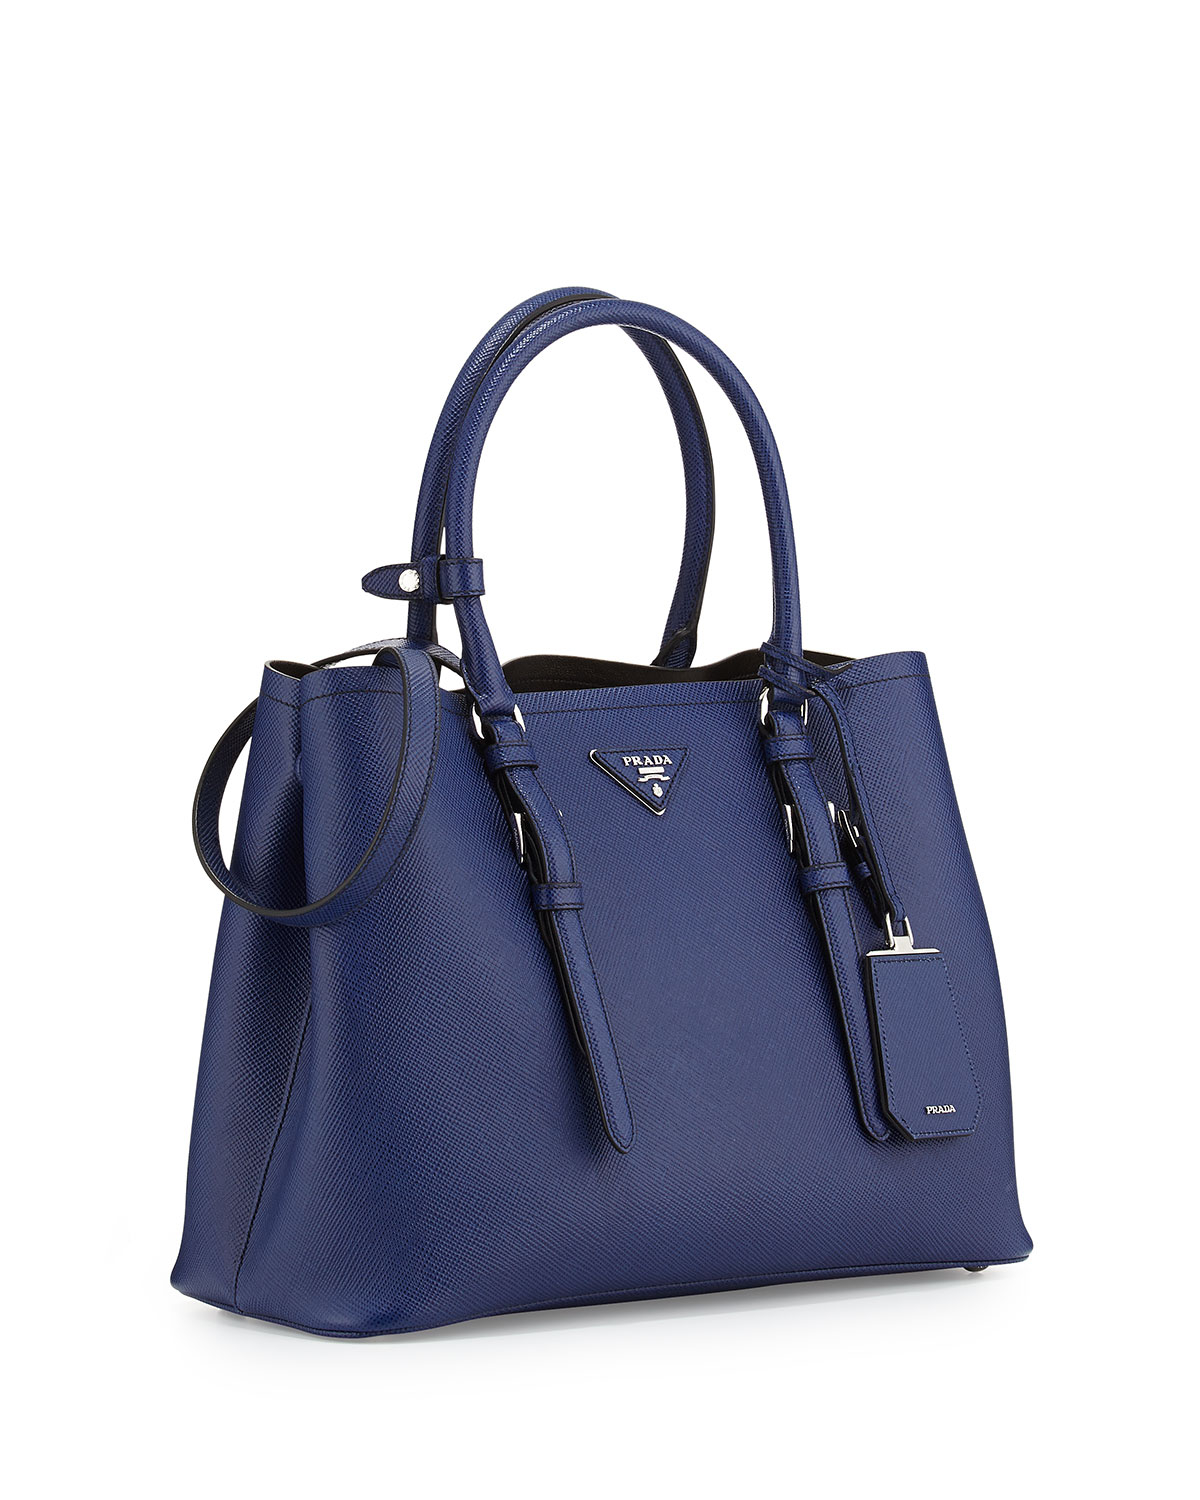 cab14a3eef41 ... shopping prada saffiano cuir covered strap double bag in blue lyst  a1211 65c90